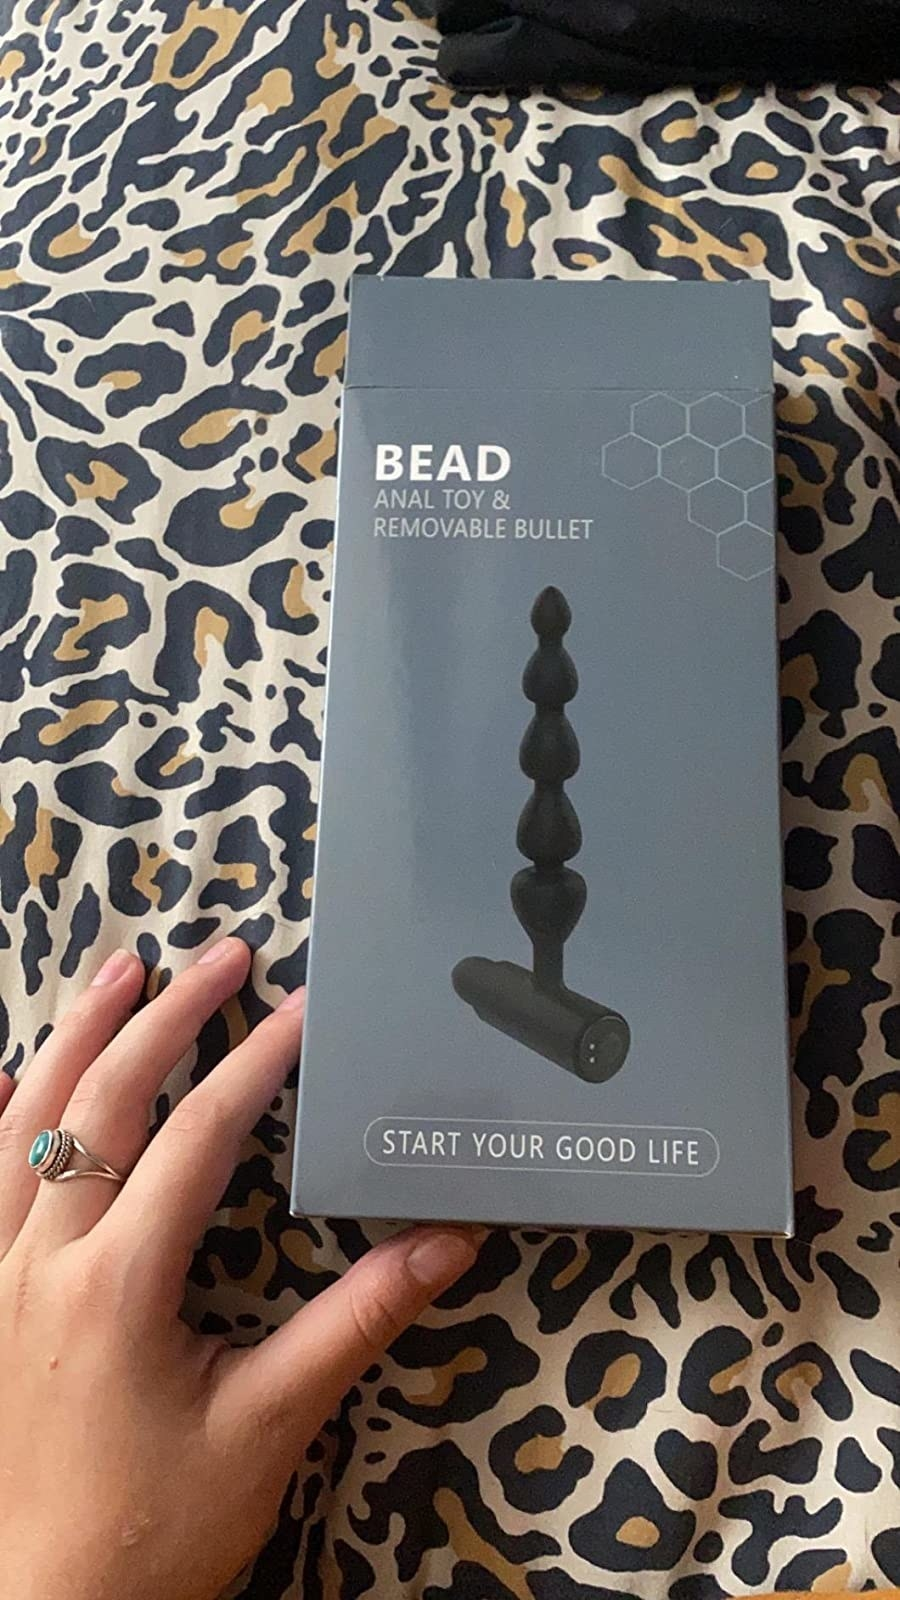 reviewer image of the anal beads butt plug